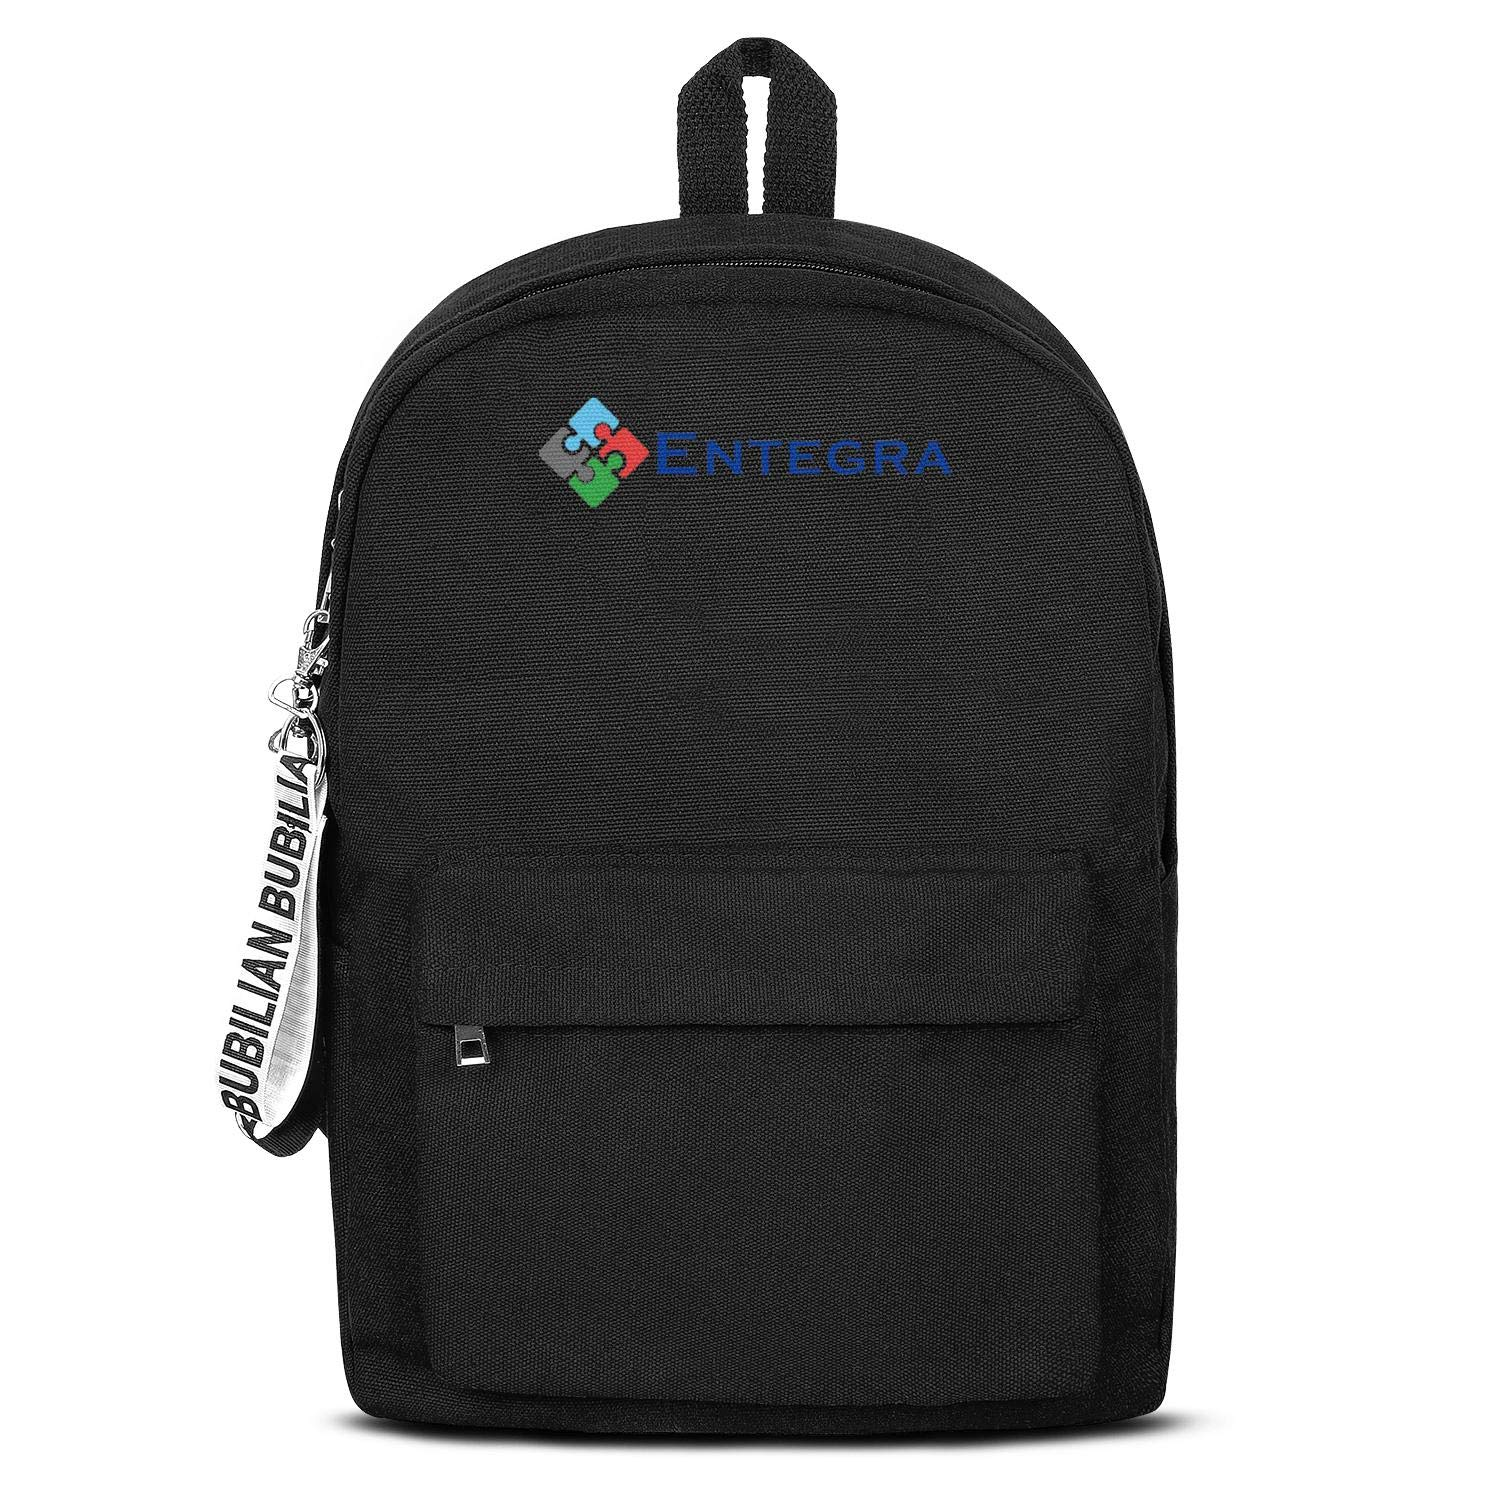 Suitable for Sports Canvas Student Bag Fashion Canvas Student Bag Design Crazy Pattern Eclipse-logo-22 Durable and Convenient String Package